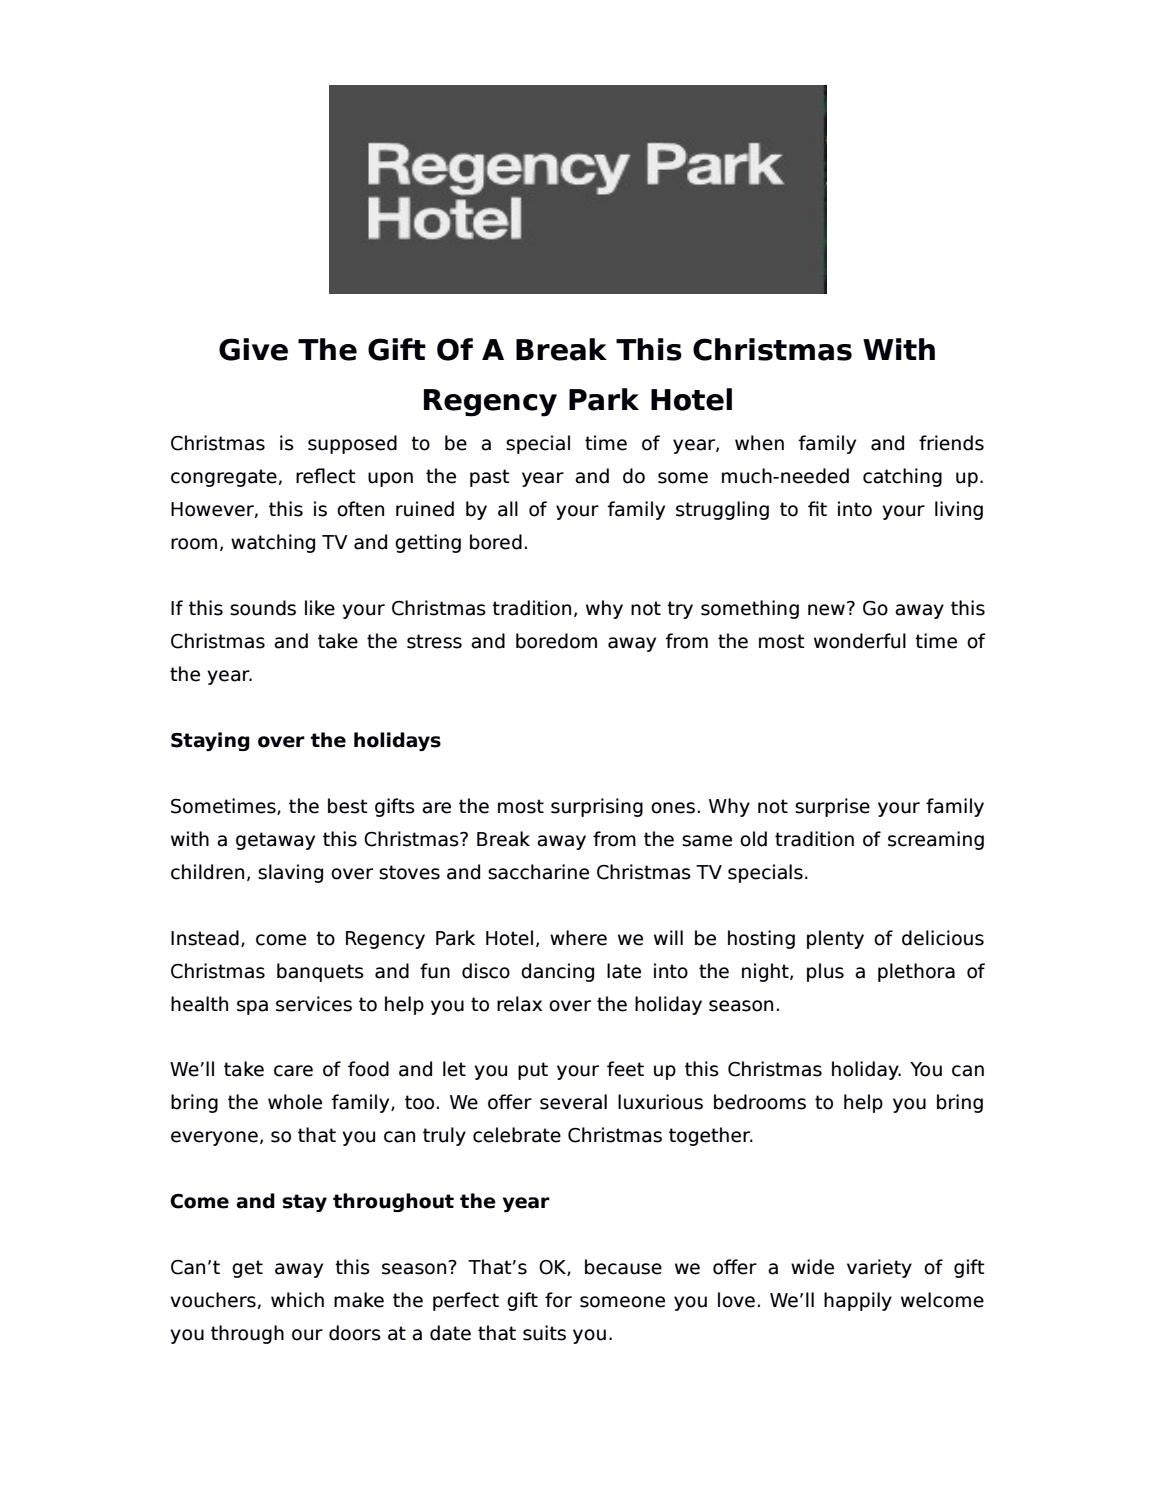 Give the gift of a break this christmas with regency park hotel by ...